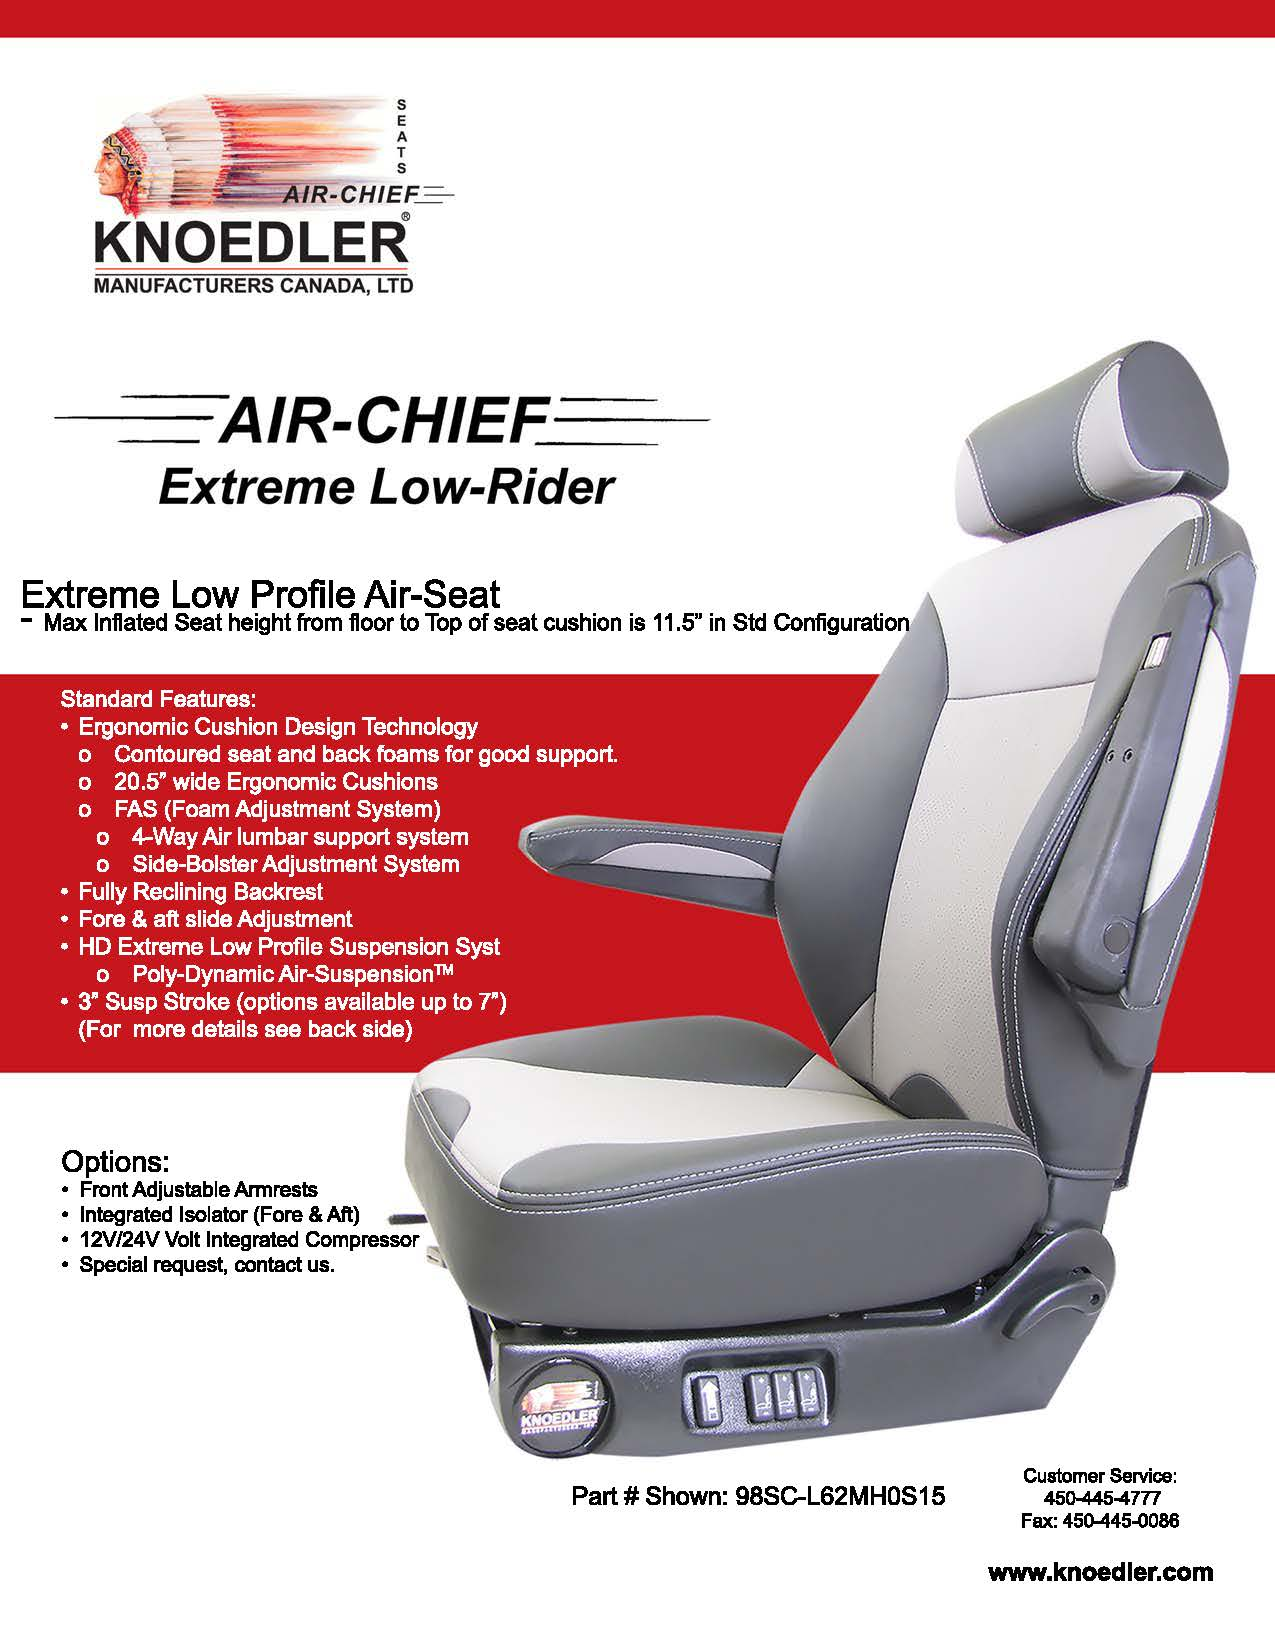 ac-extremelowrider-brochure-pict-2.24.17-page-1.jpg